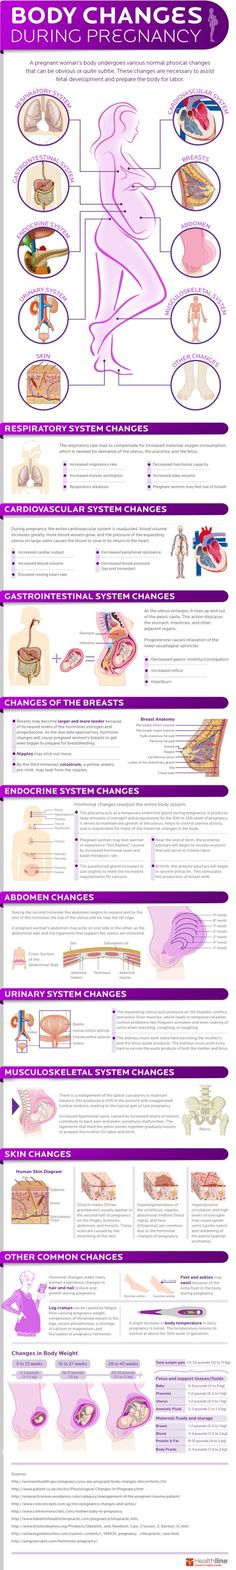 Body Changes During Pregnancy [INFOGRAPHIC].